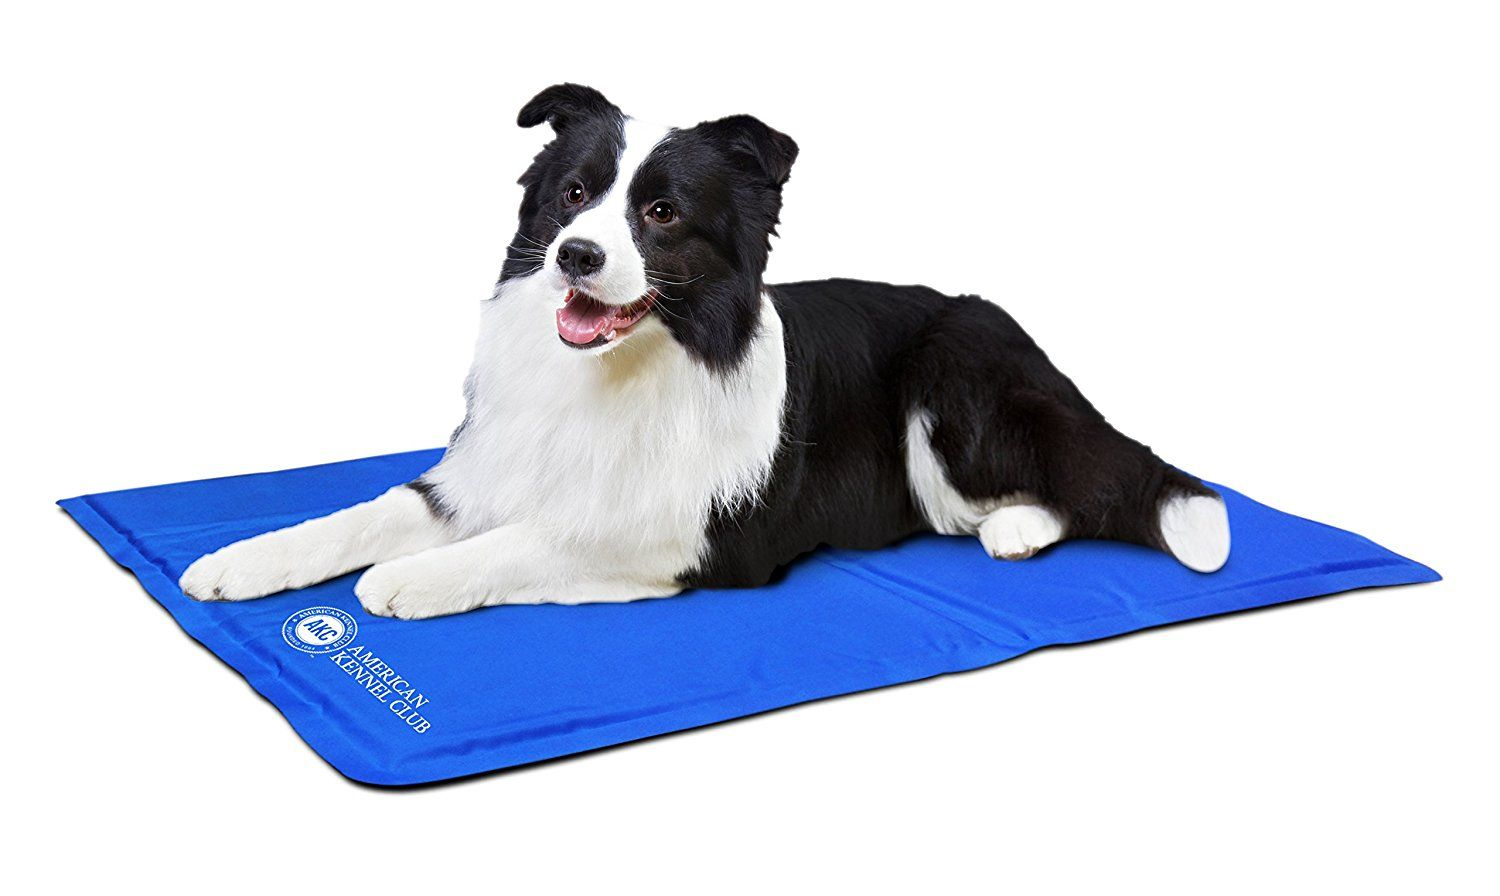 Akc Pet Cooling Mat Read More Reviews Of The Product By